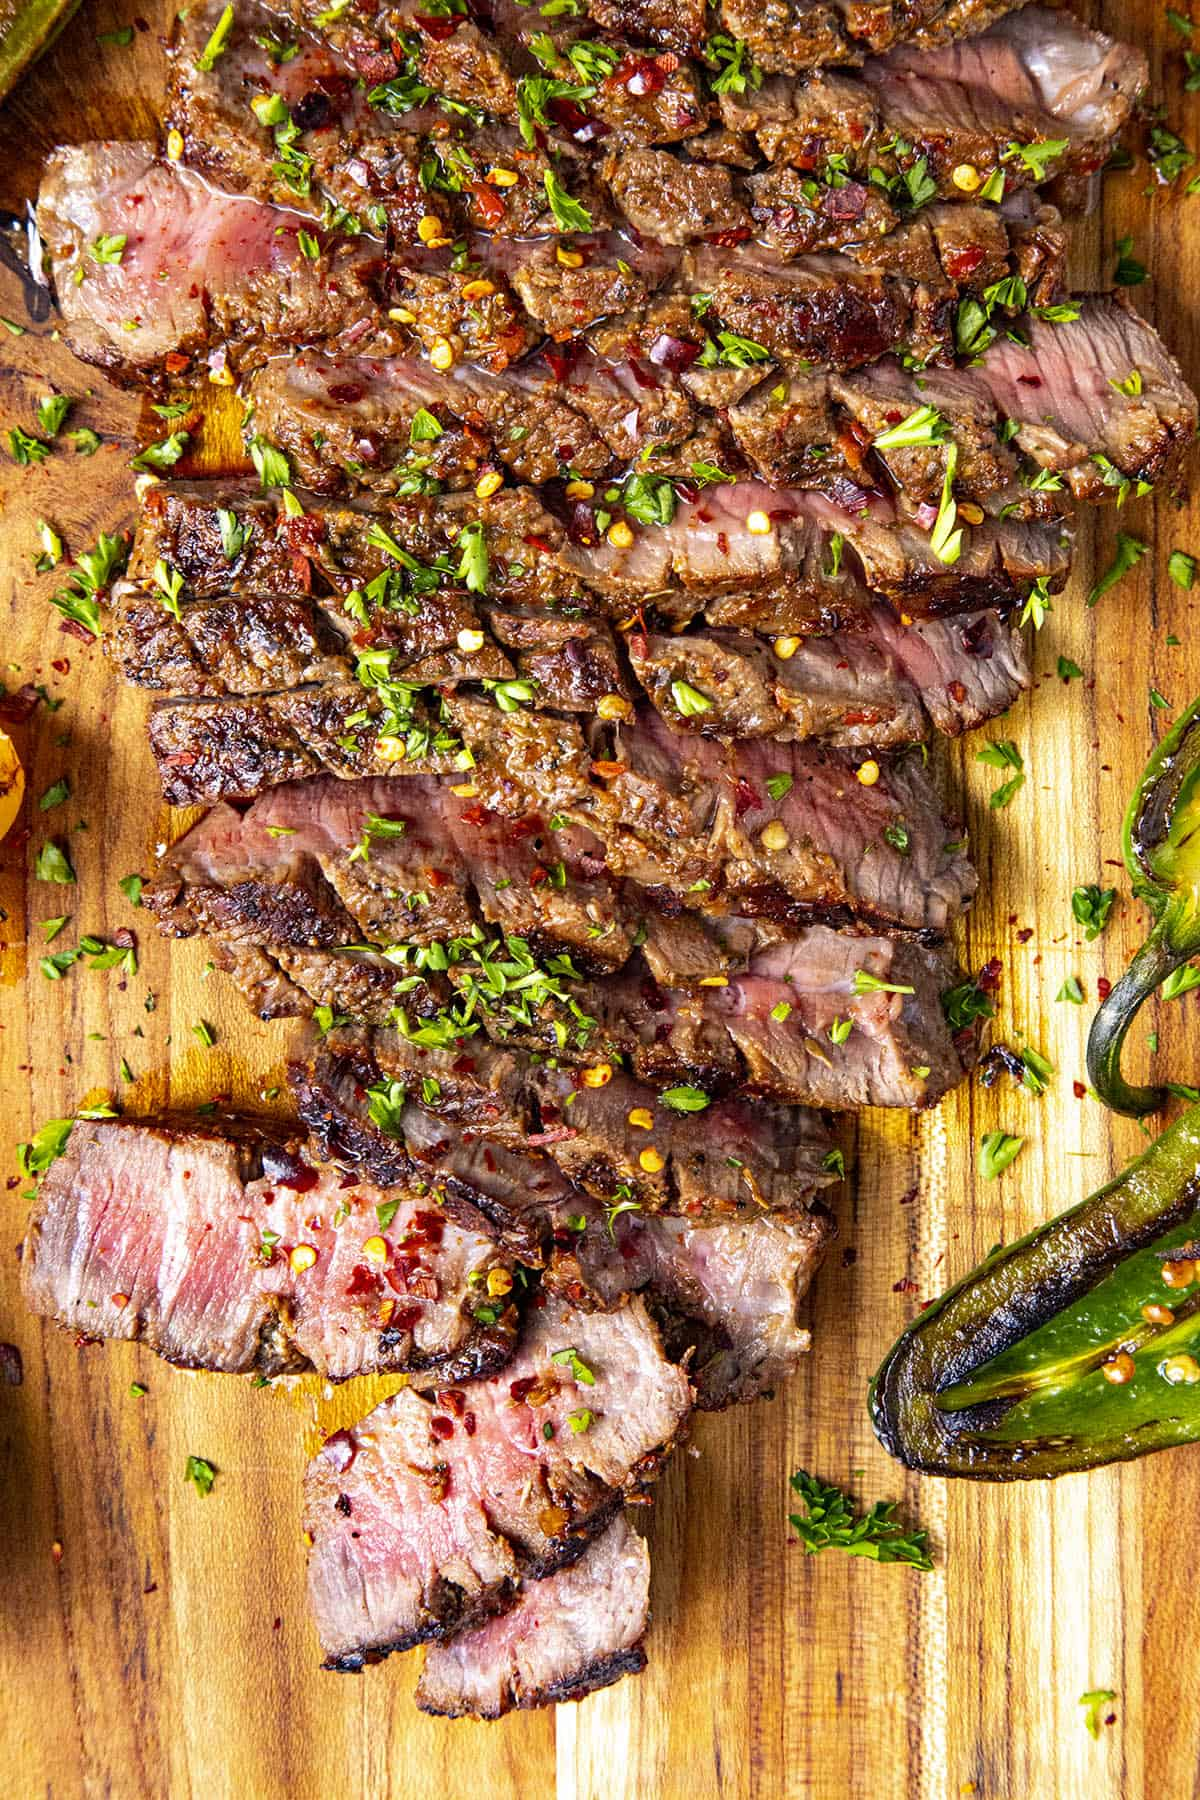 Sliced London broil on a platter with chili flakes